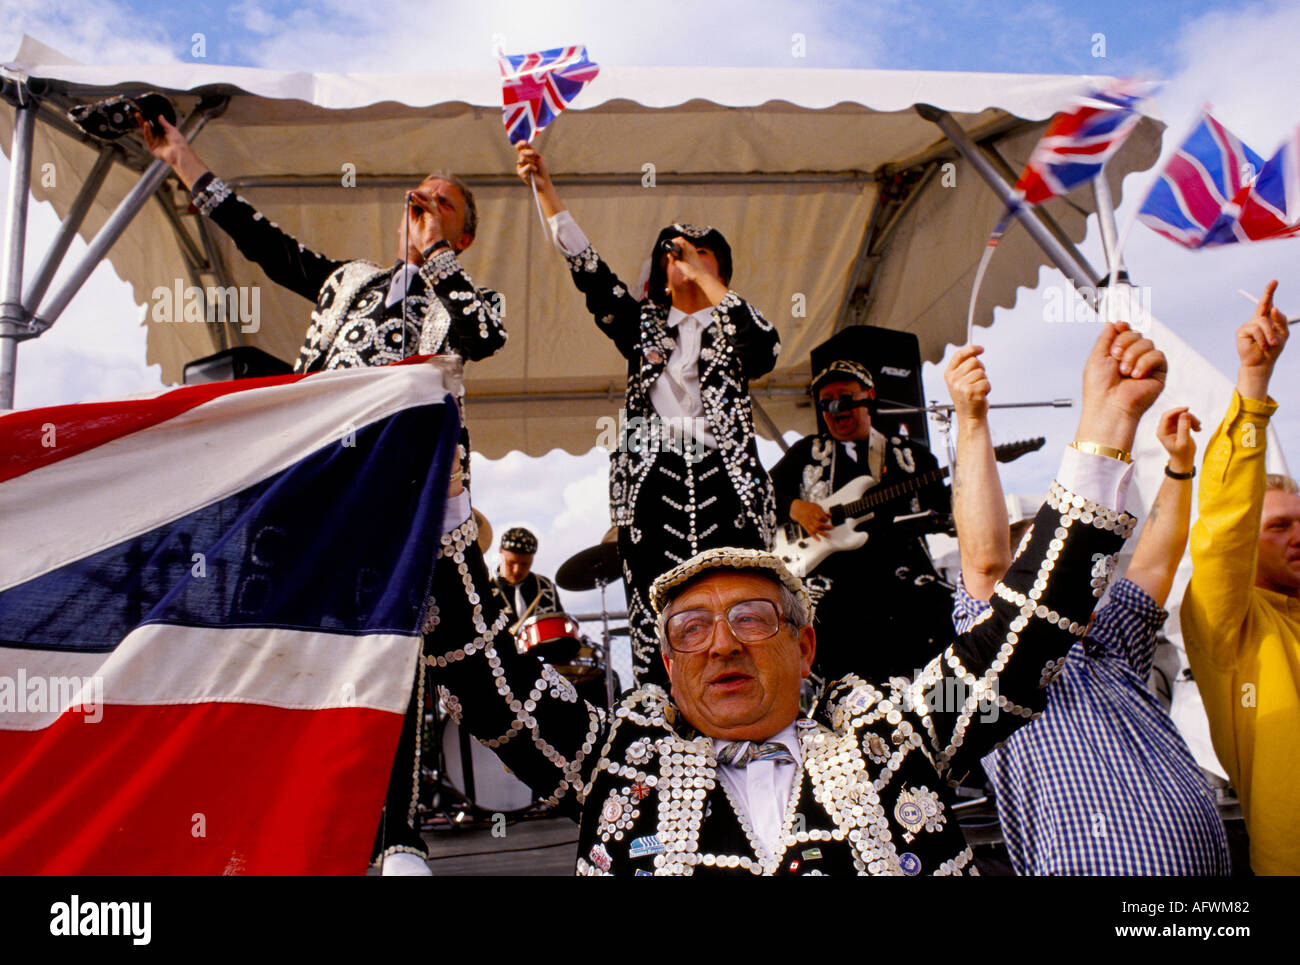 PEARLY KINGS AND QUEENS SINGING  WAVING UNION JACK FLAGS AT THE SURREY  DERBY RACES EPSOM DOWNS. - Stock Image